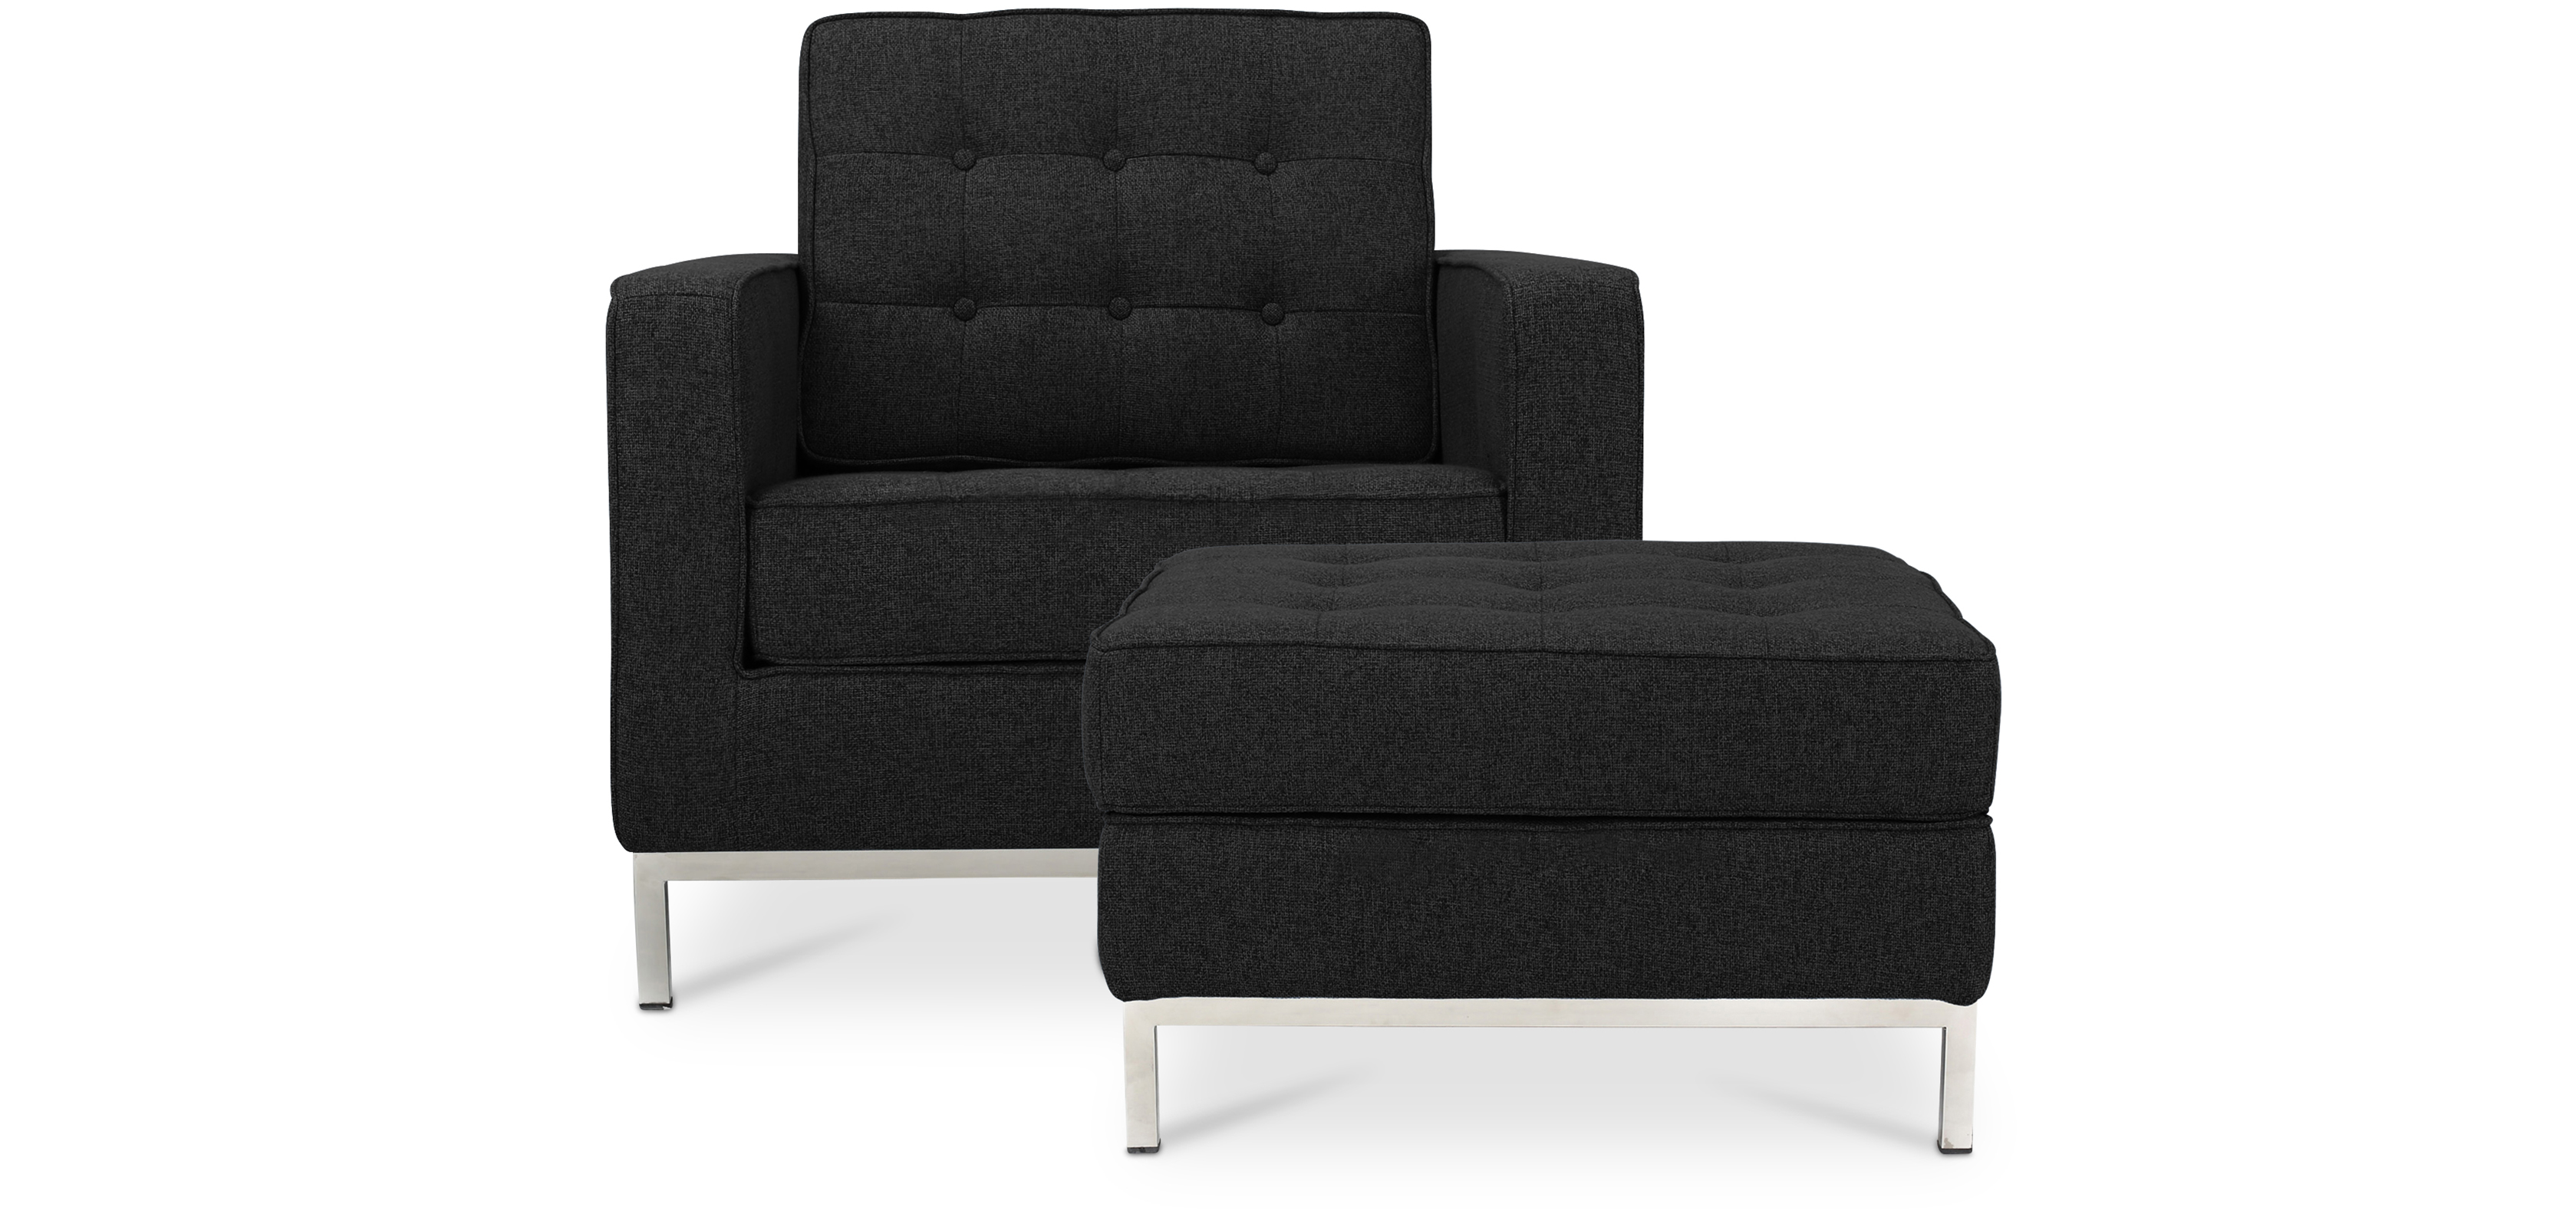 fauteuil knoll avec ottoman assorti style florence knoll. Black Bedroom Furniture Sets. Home Design Ideas